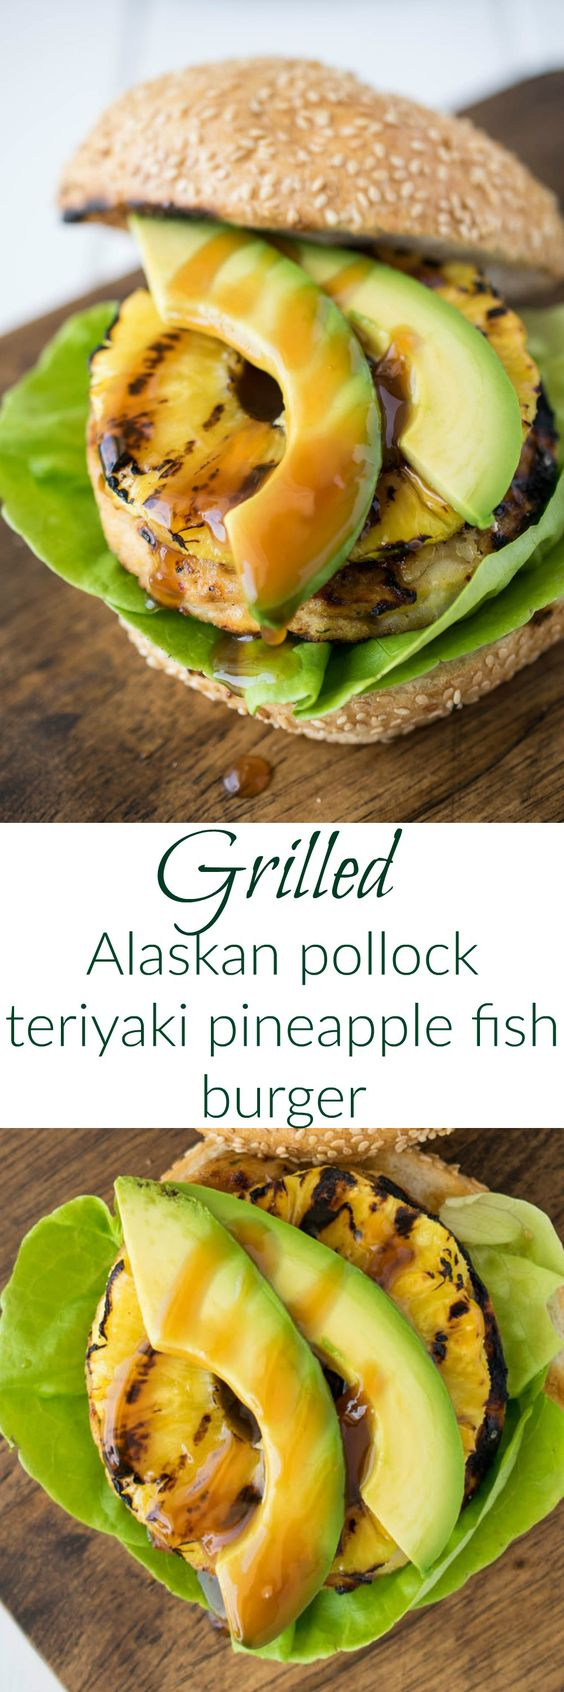 Grilled Alaskan pollock teriyaki pineapple fish burger is white fish burger with homemade teriyaki sauce topped with sweet grilled pineapple and sliced avocado is burger deliciousness without the guilt. #Swapyourburger #ad @tridentseafoods: